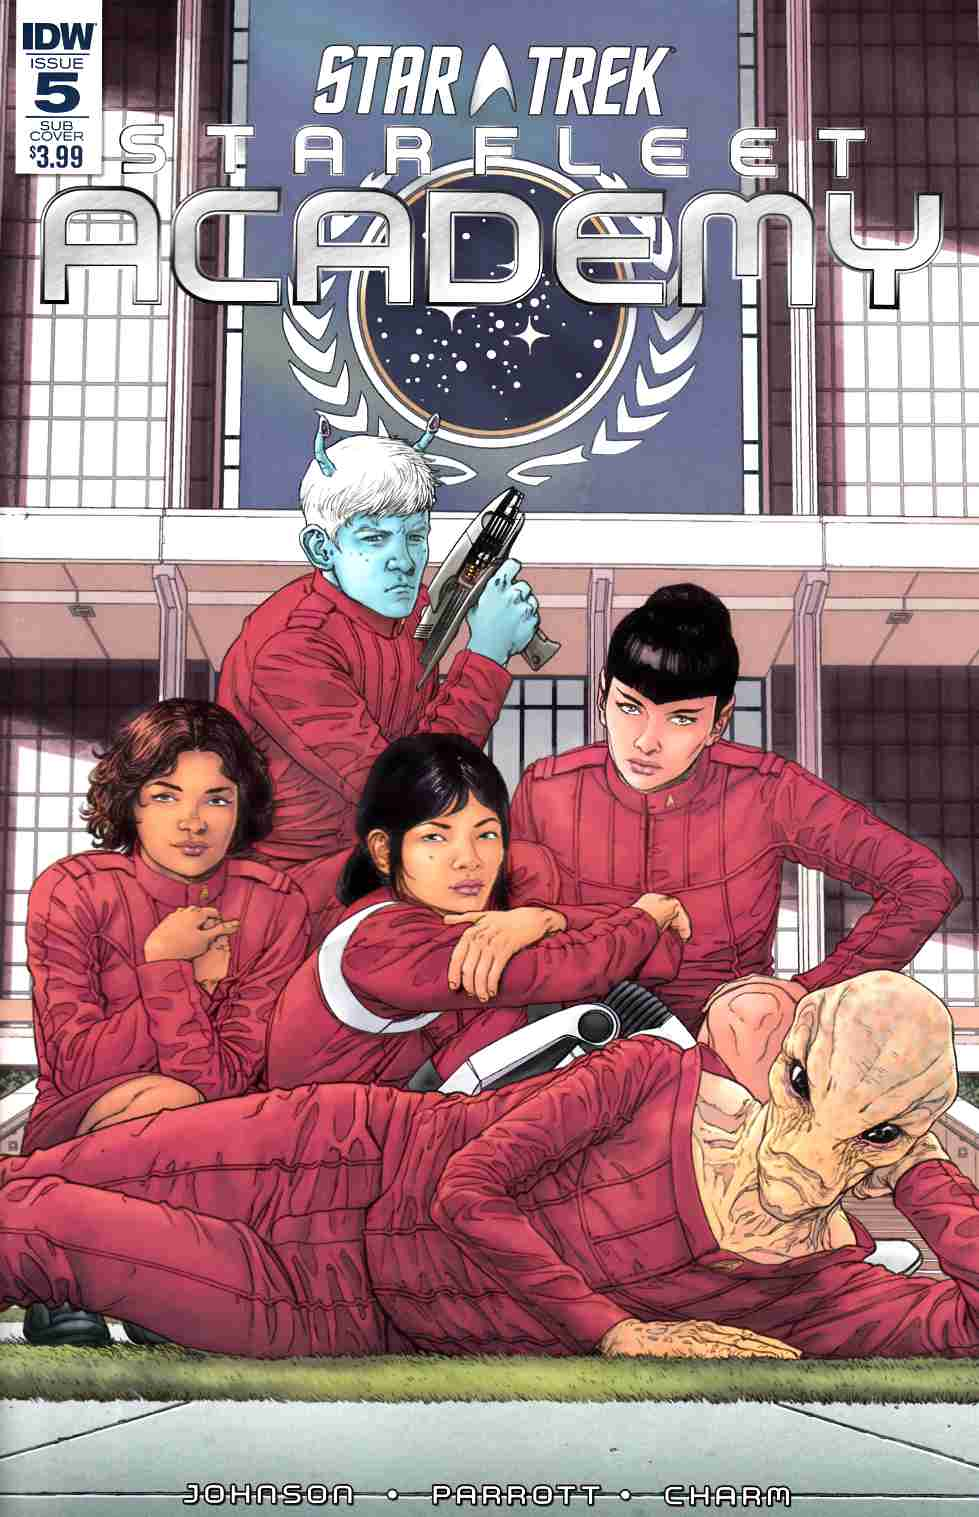 Star Trek Starfleet Academy #5 Subscription Cover [IDW Comic] THUMBNAIL